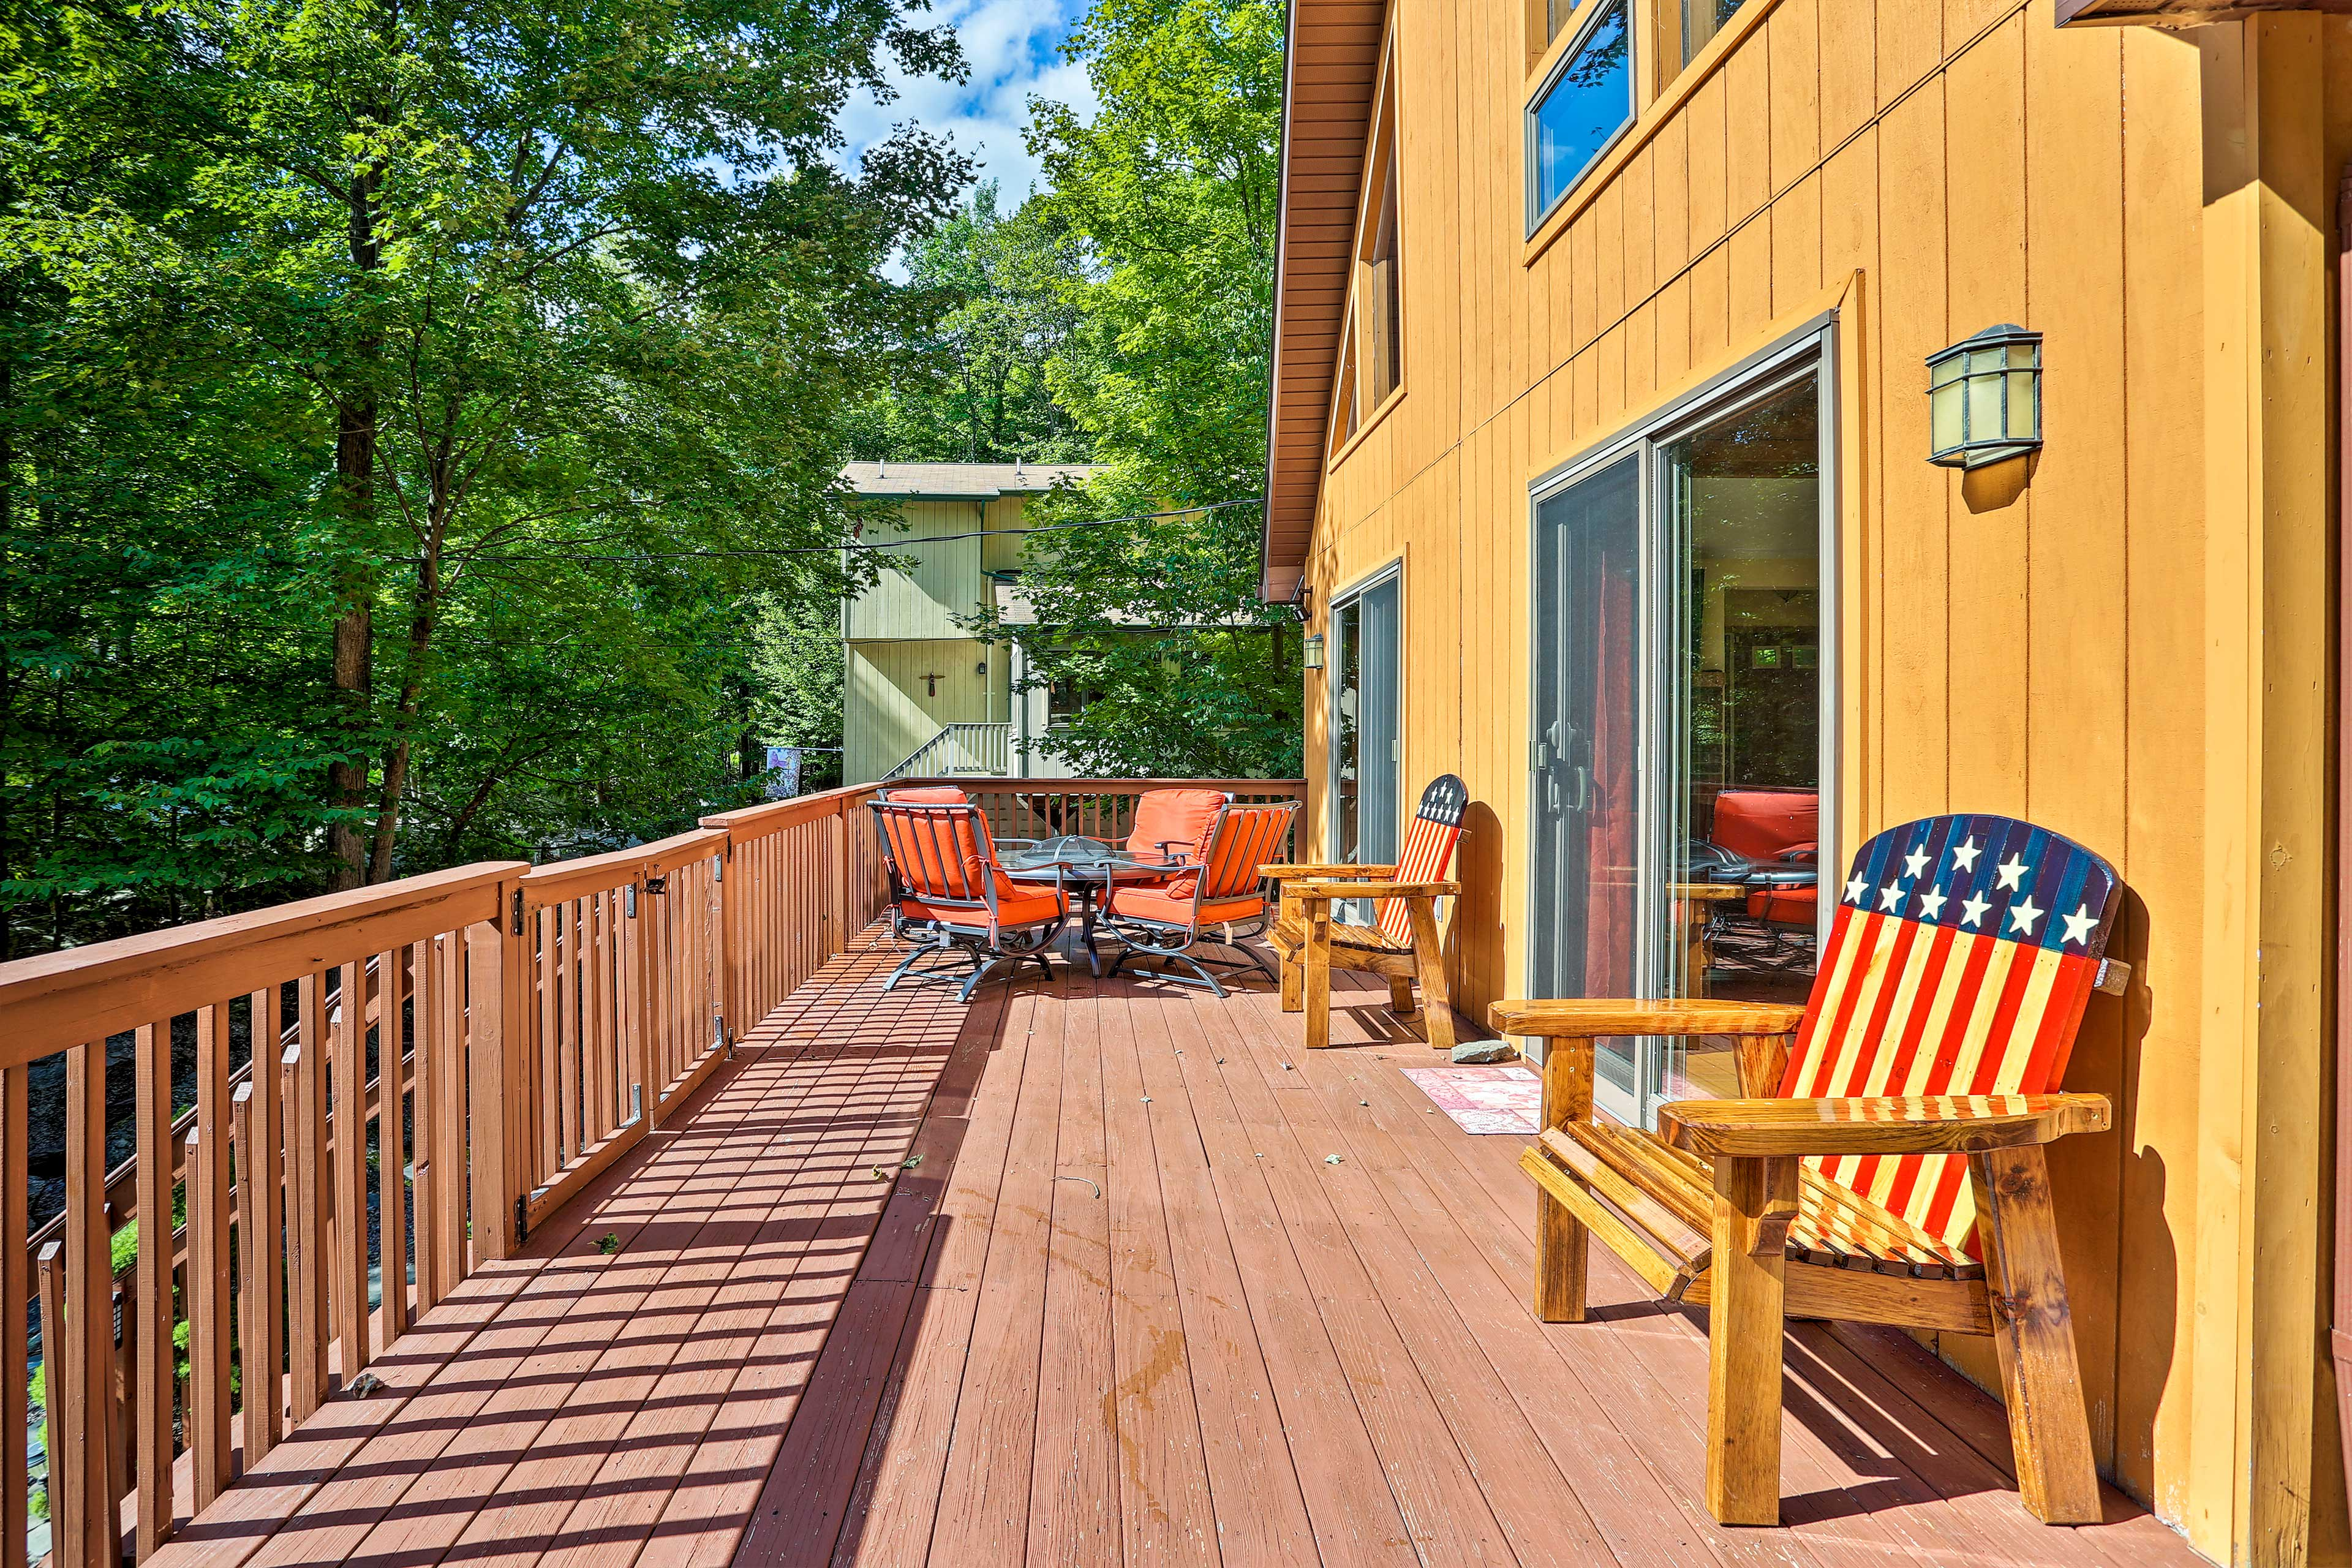 The deck has a fire pit and gas grill!